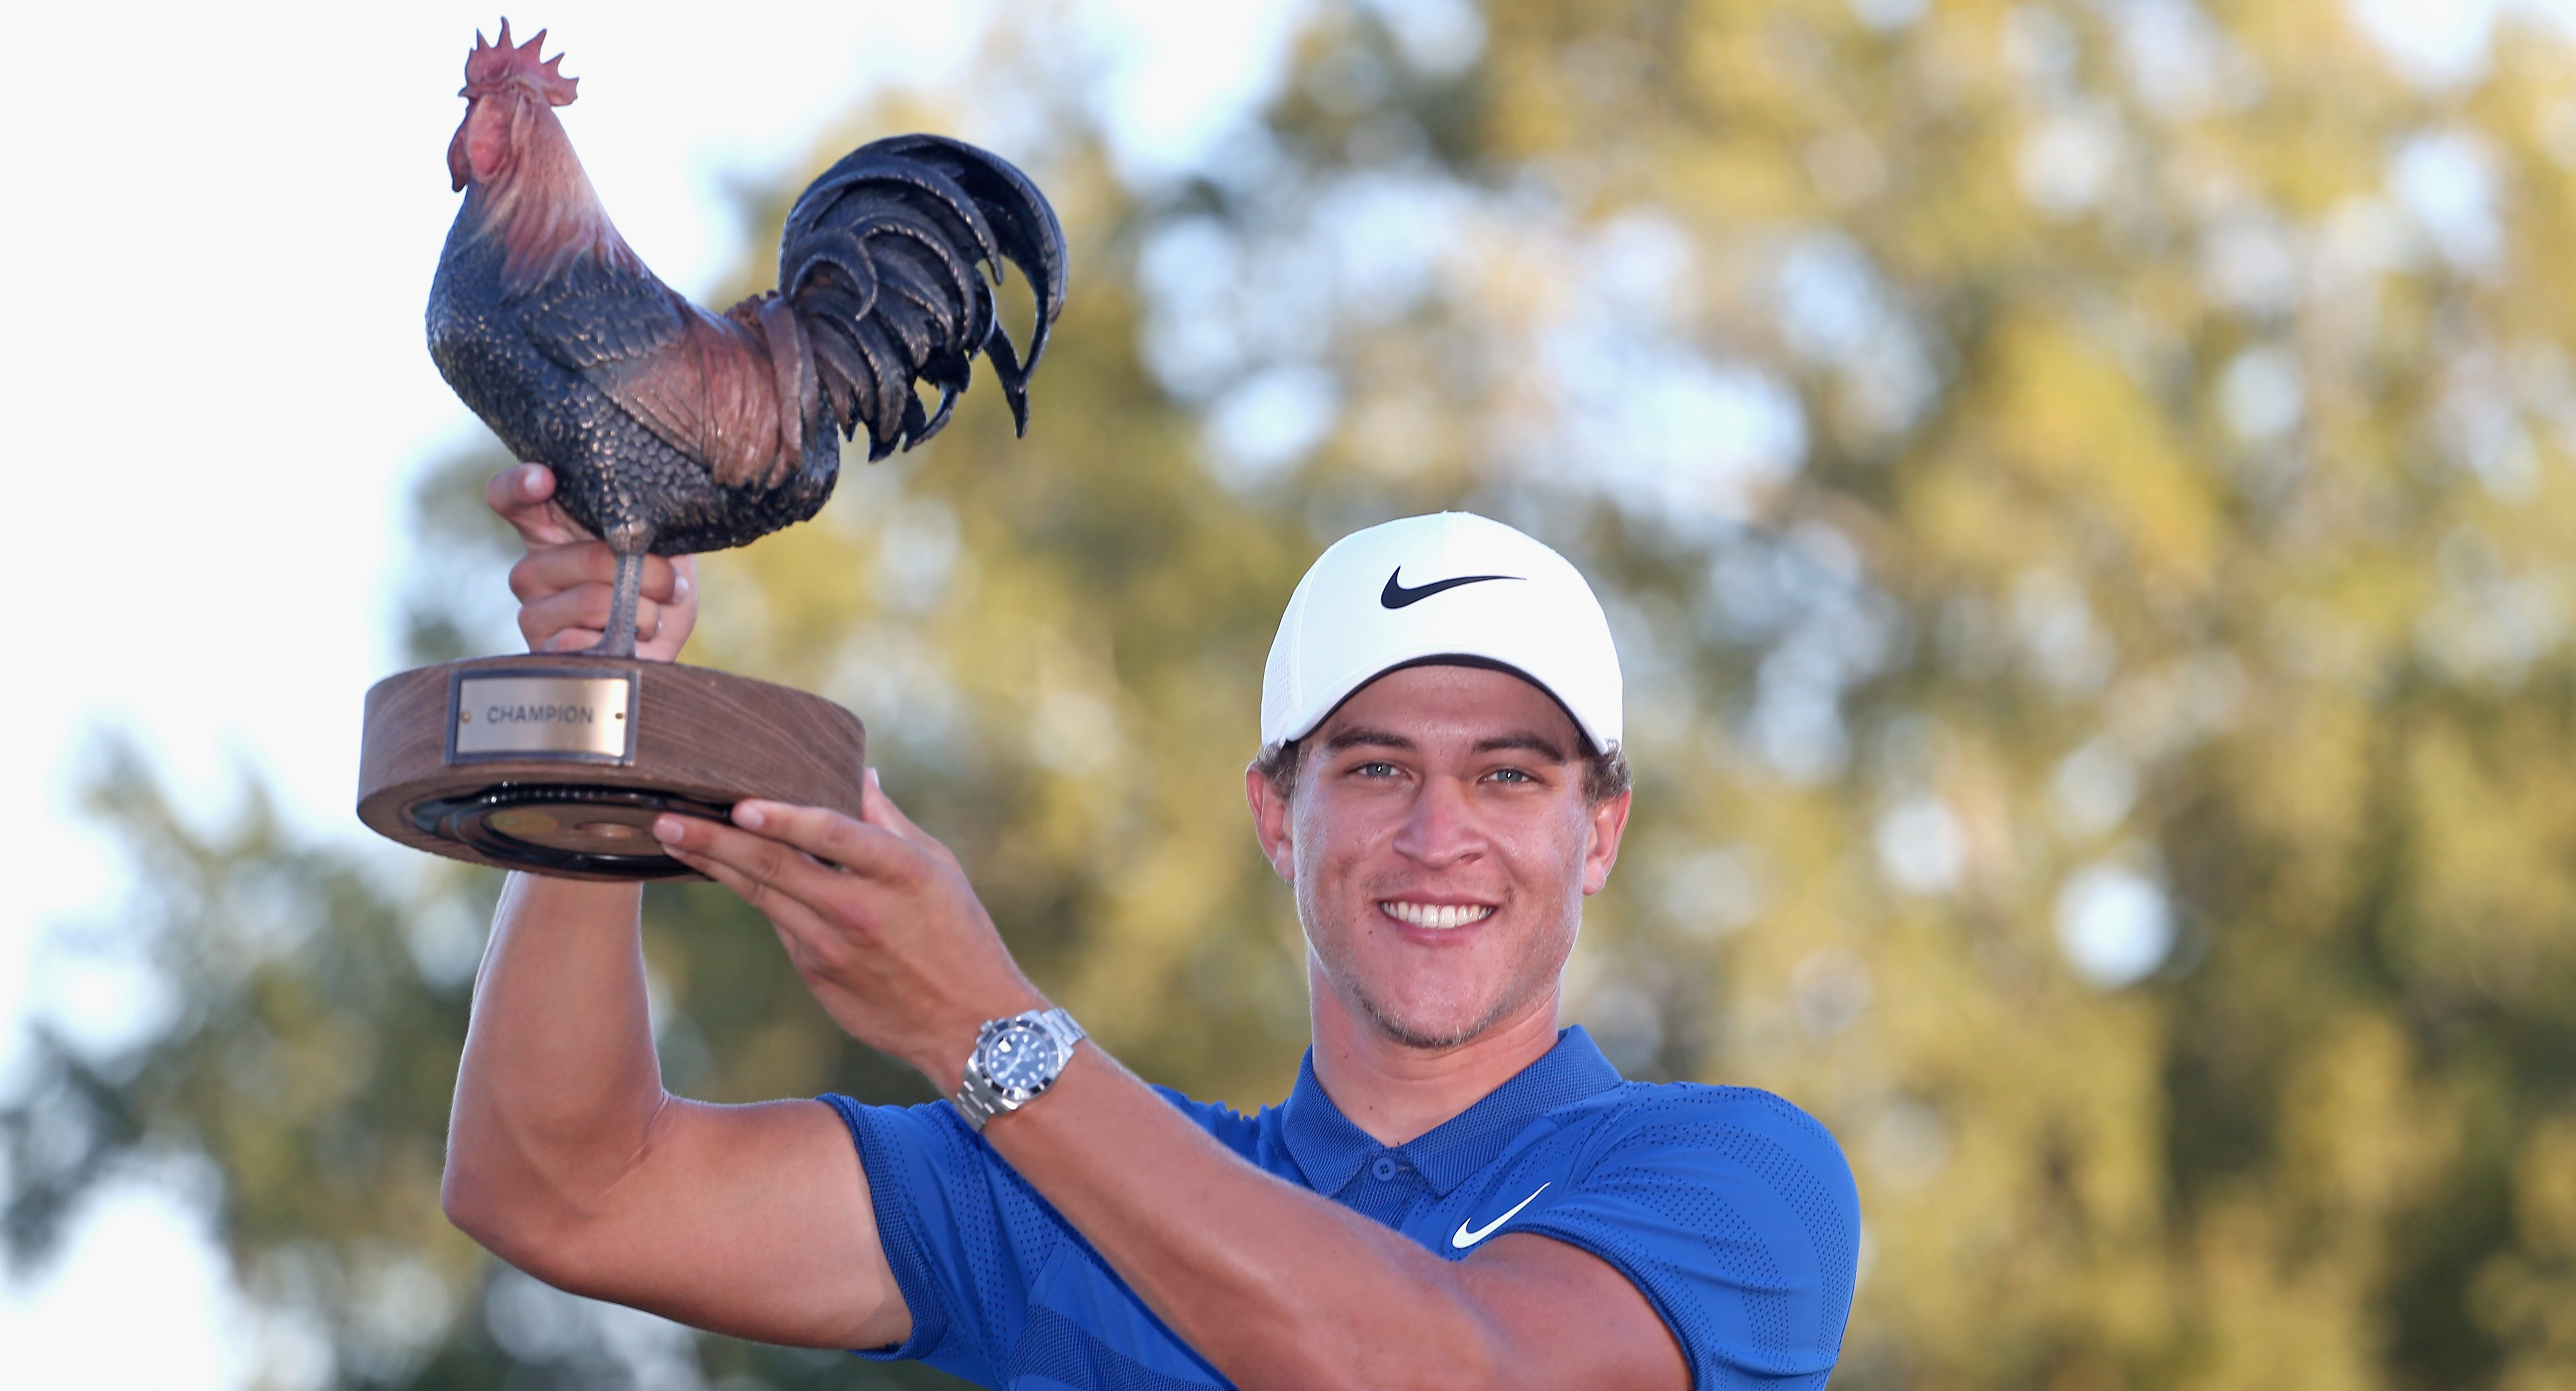 JACKSON, MS - OCTOBER 28: Cameron Champ poses with the trophy after winning the Sanderson Farms Championship at the Country Club of Jackson on October 28, 2018 in Jackson, Mississippi. (Photo by Matt Sullivan/Getty Images)